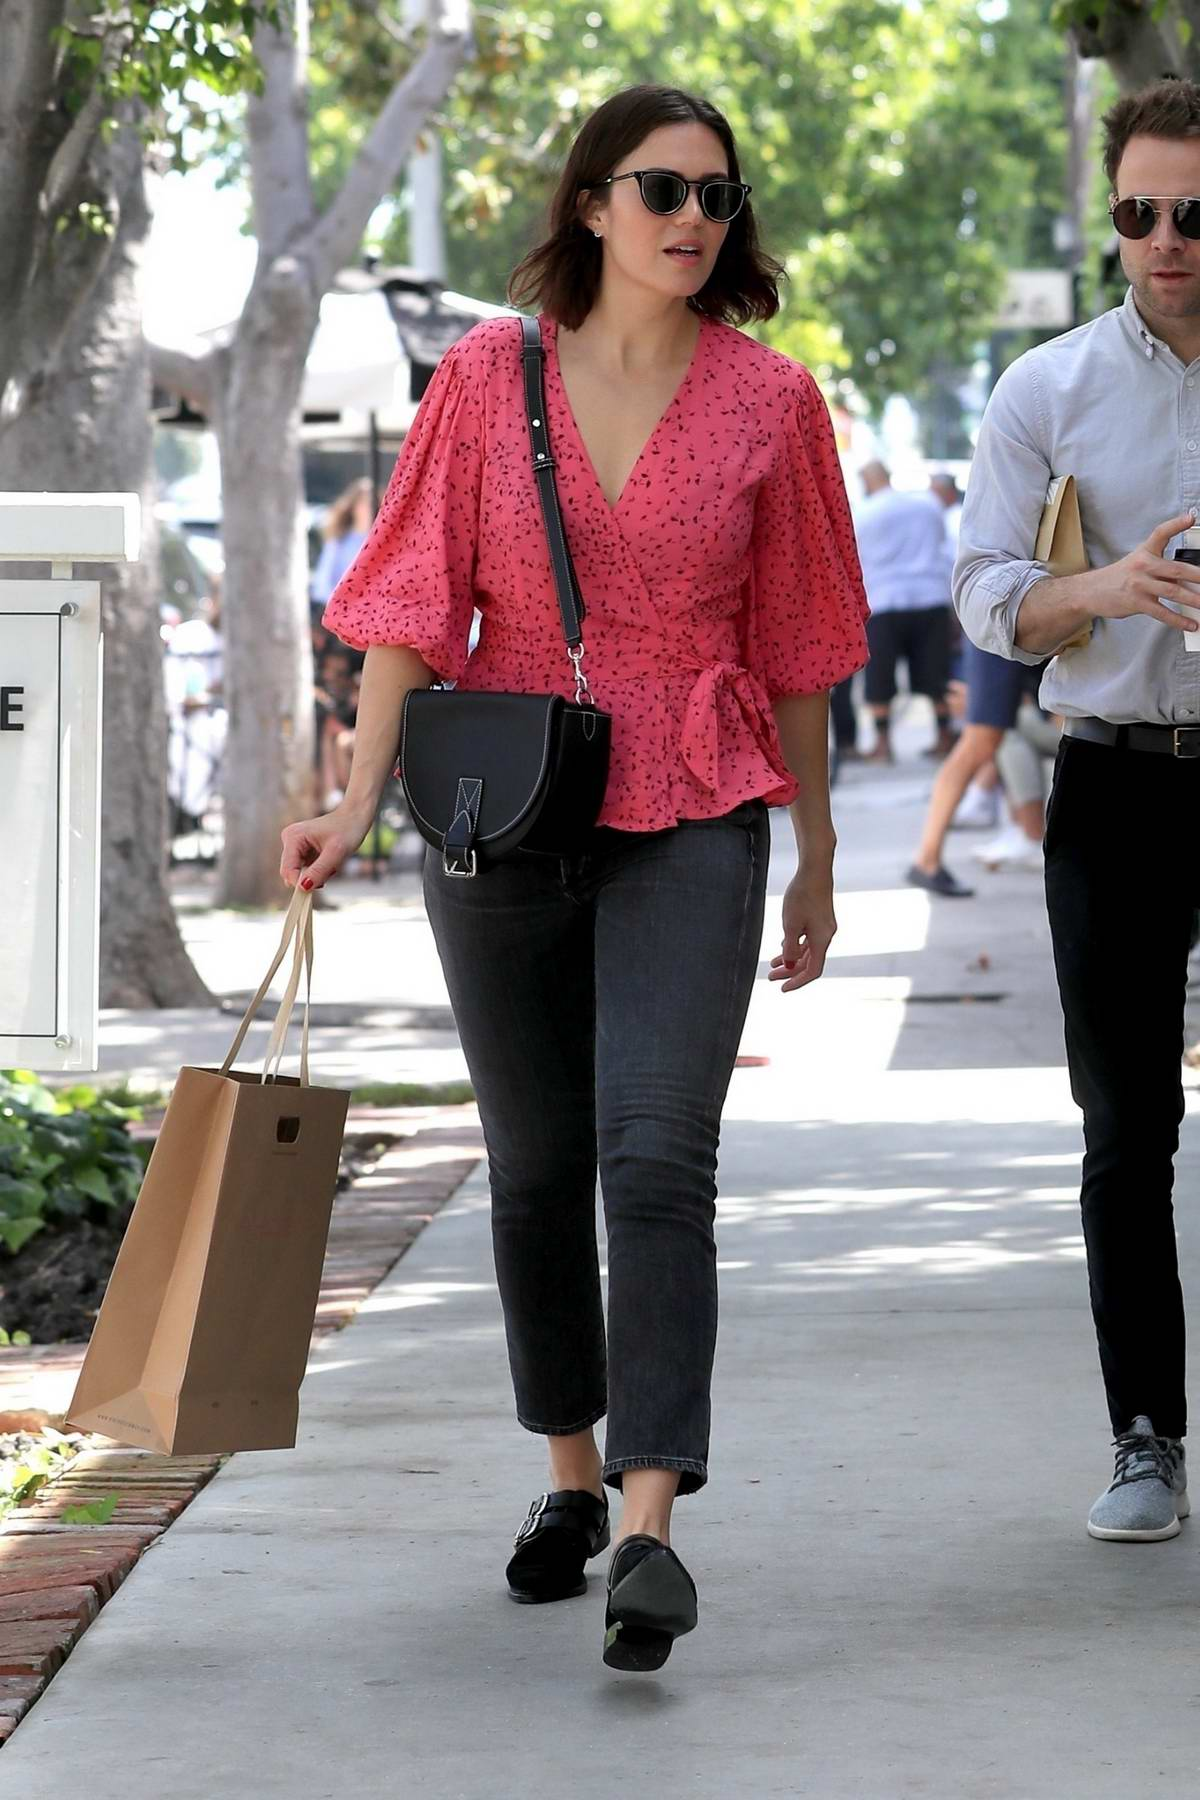 Mandy Moore steps out for some shopping with husband Taylor Goldsmith on Melrose Place in Los Angeles